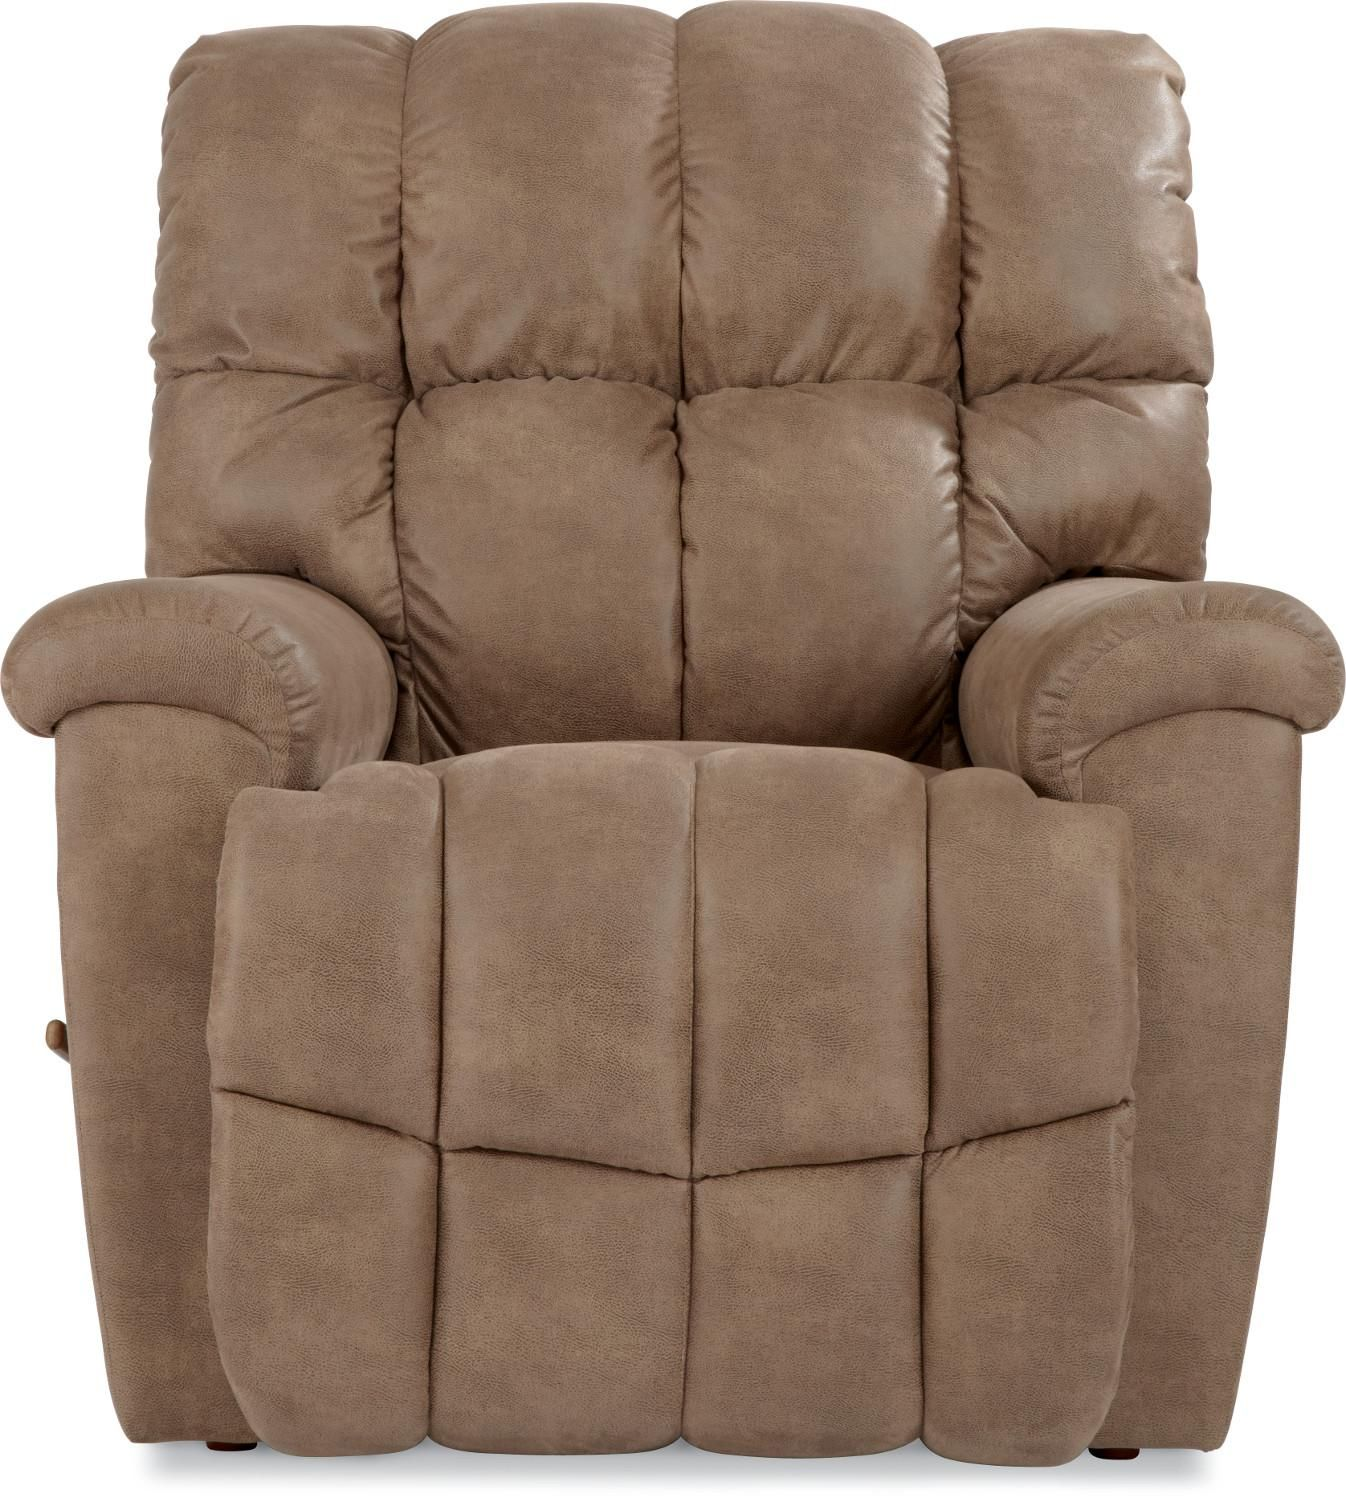 recliner large covers slipcover t furniture chair of parsons size slipcovers ikea breathtaking full slipcovered cushion couches extra